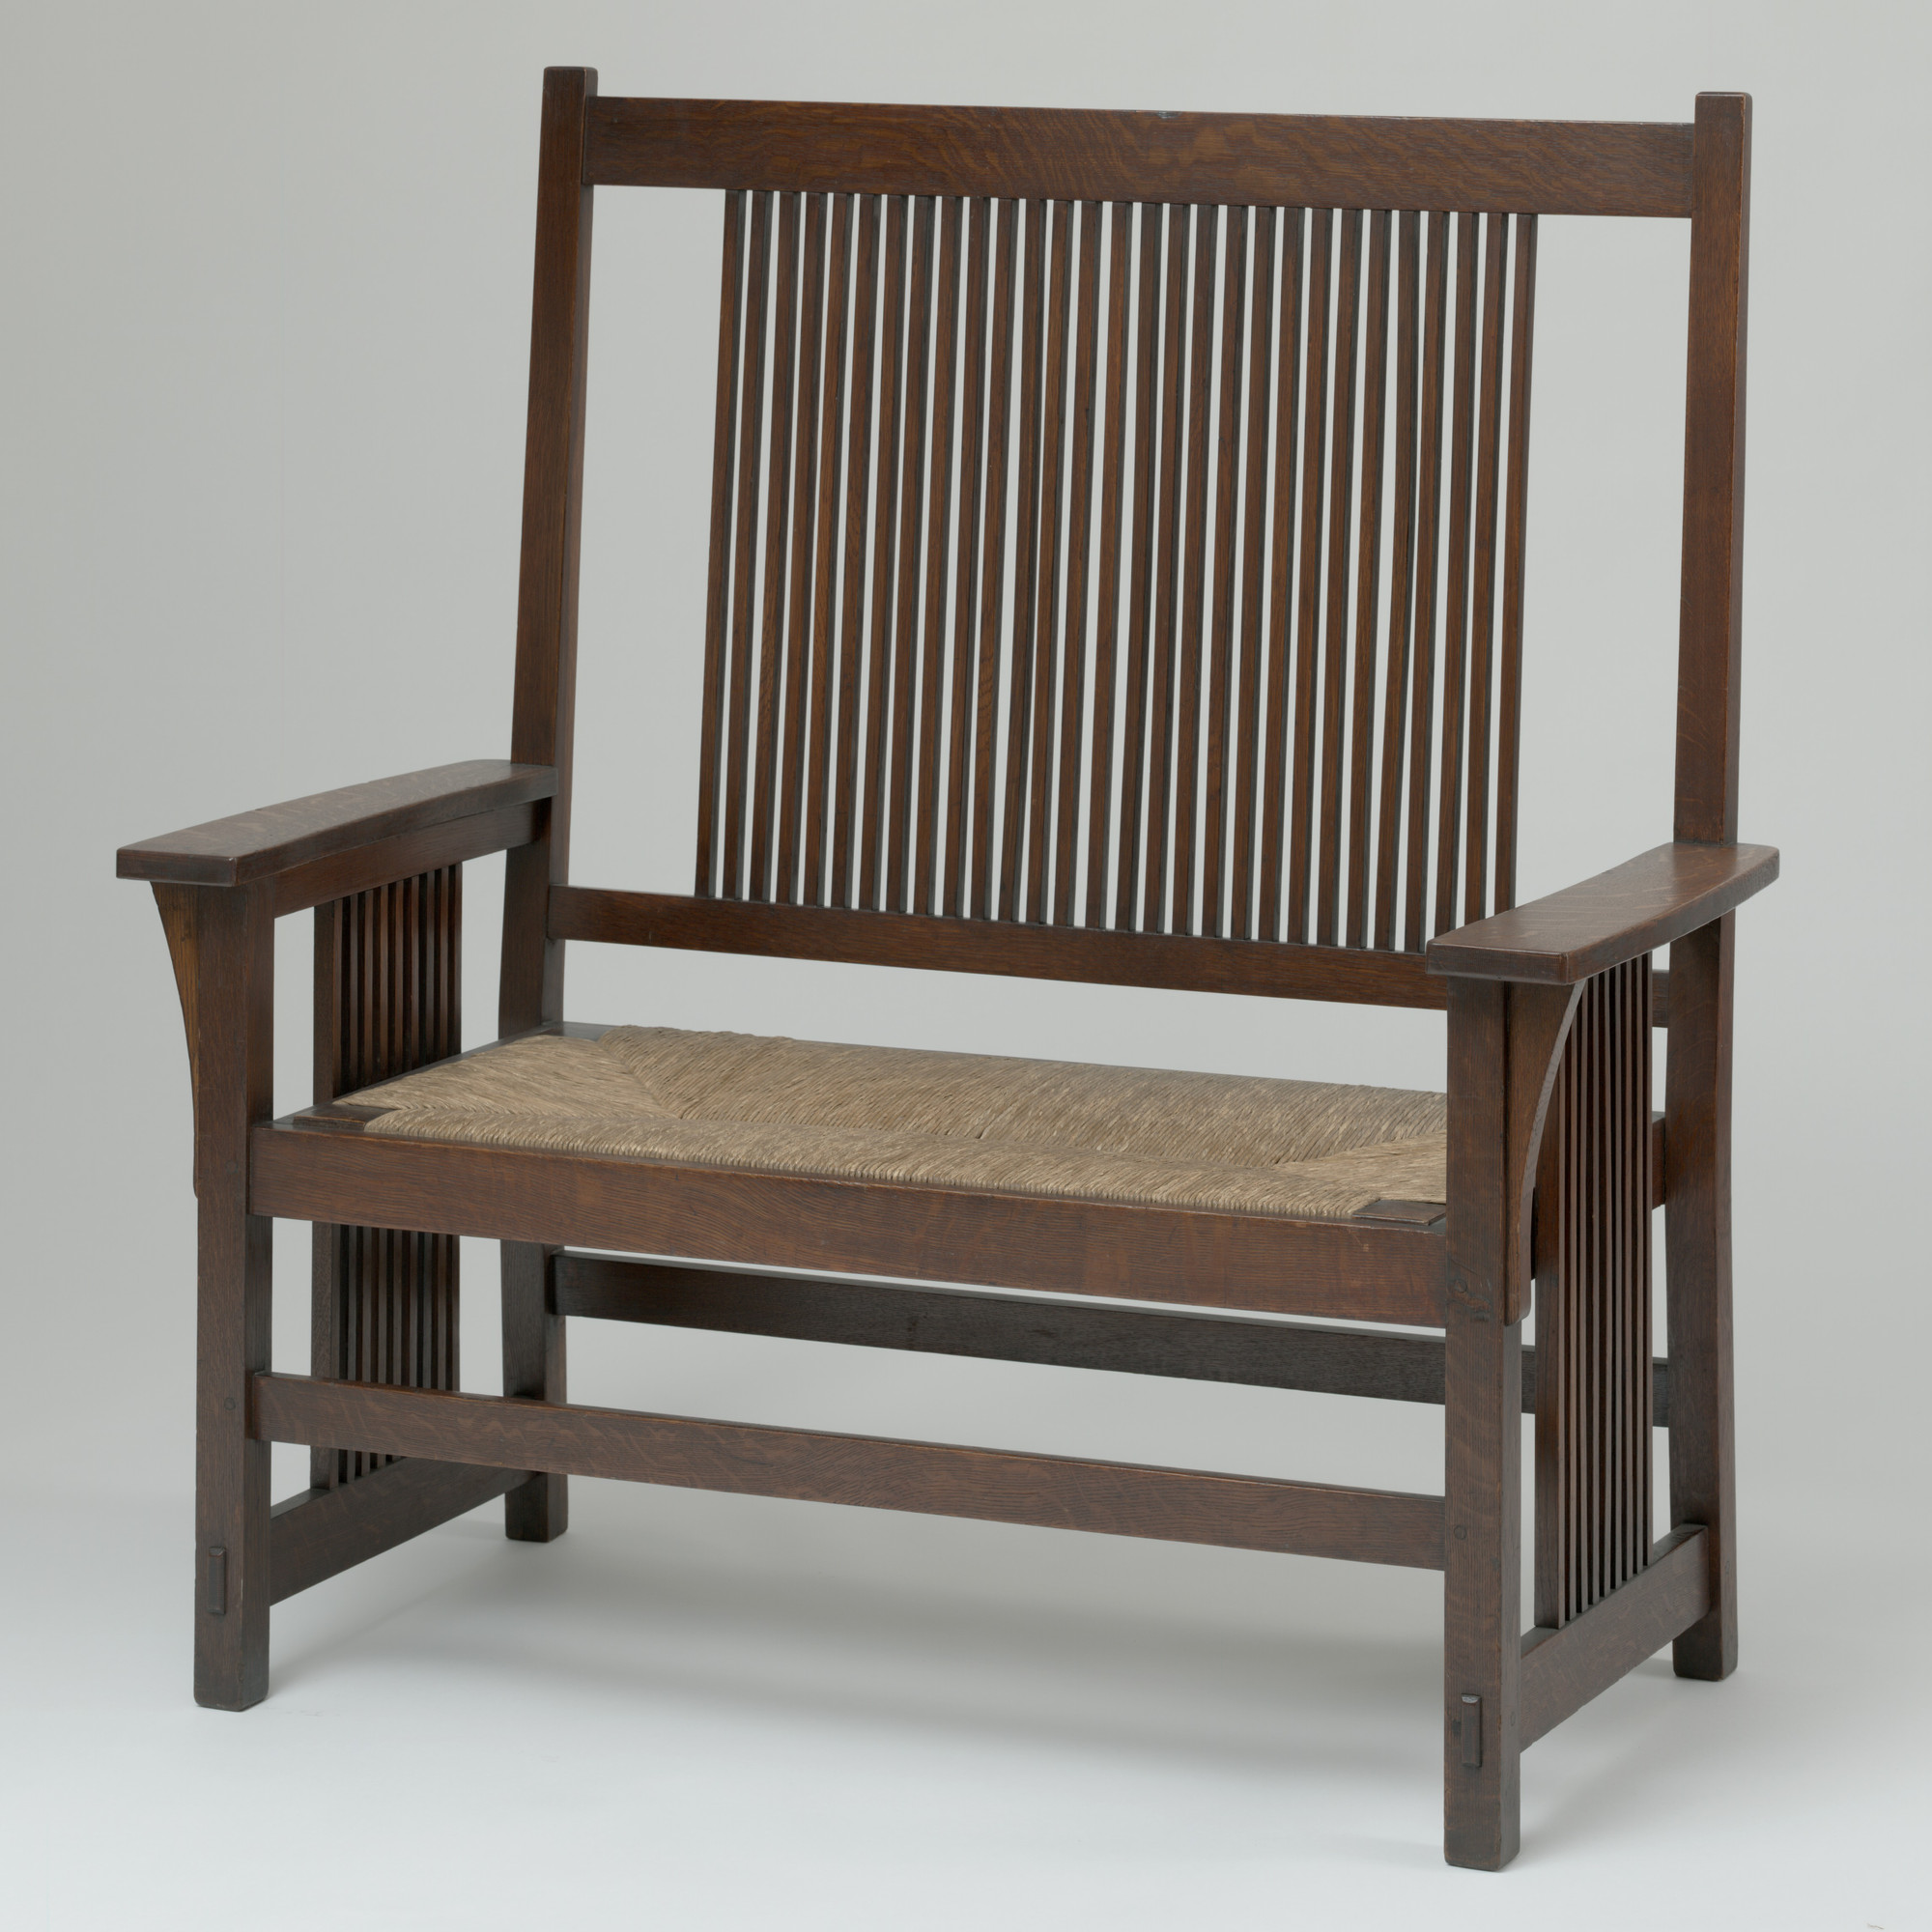 Gustav Stickley. Settee. 1905